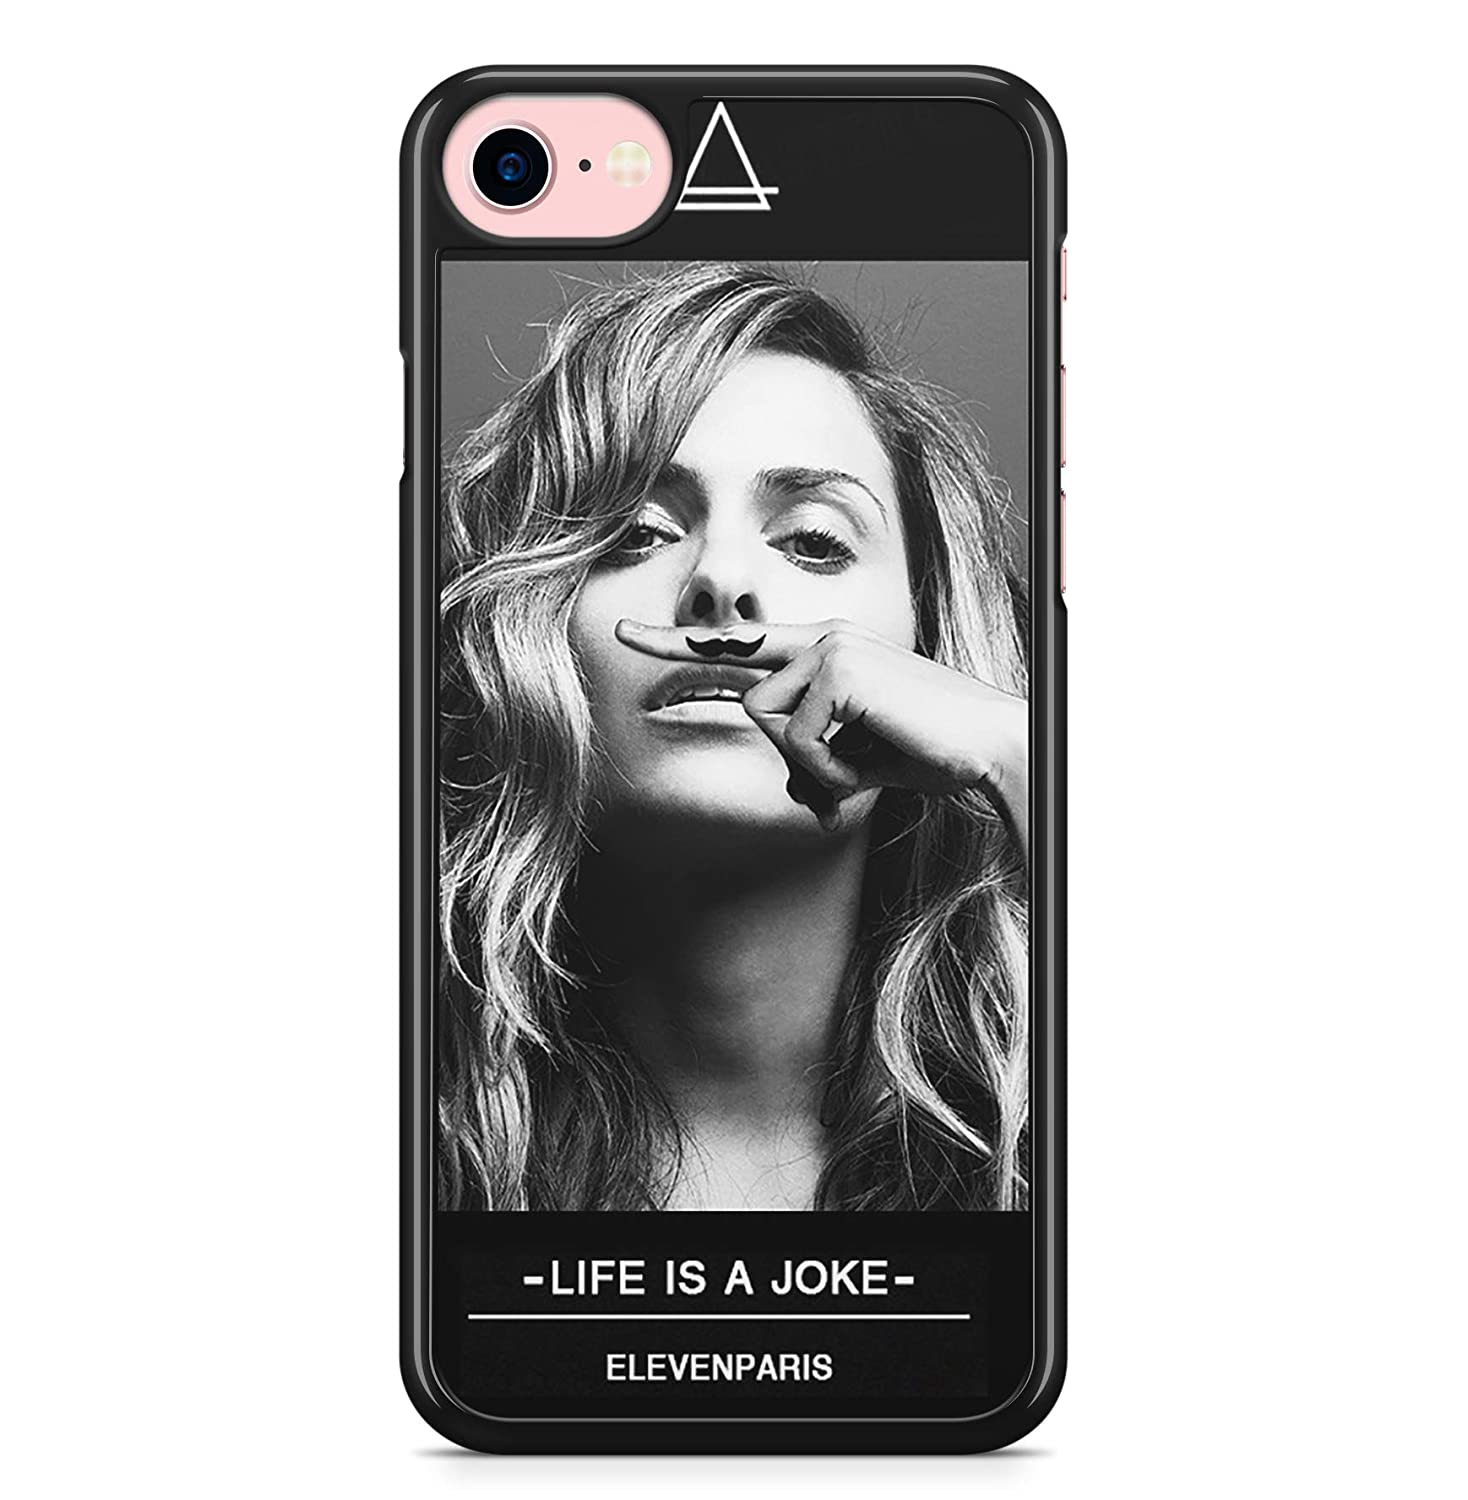 Coque iPhone 4 4S 5 5S SE 5C 6S Plus 7 8 X XS MAX XR Clara Morgane Eleven paris Life is a joke Moustache